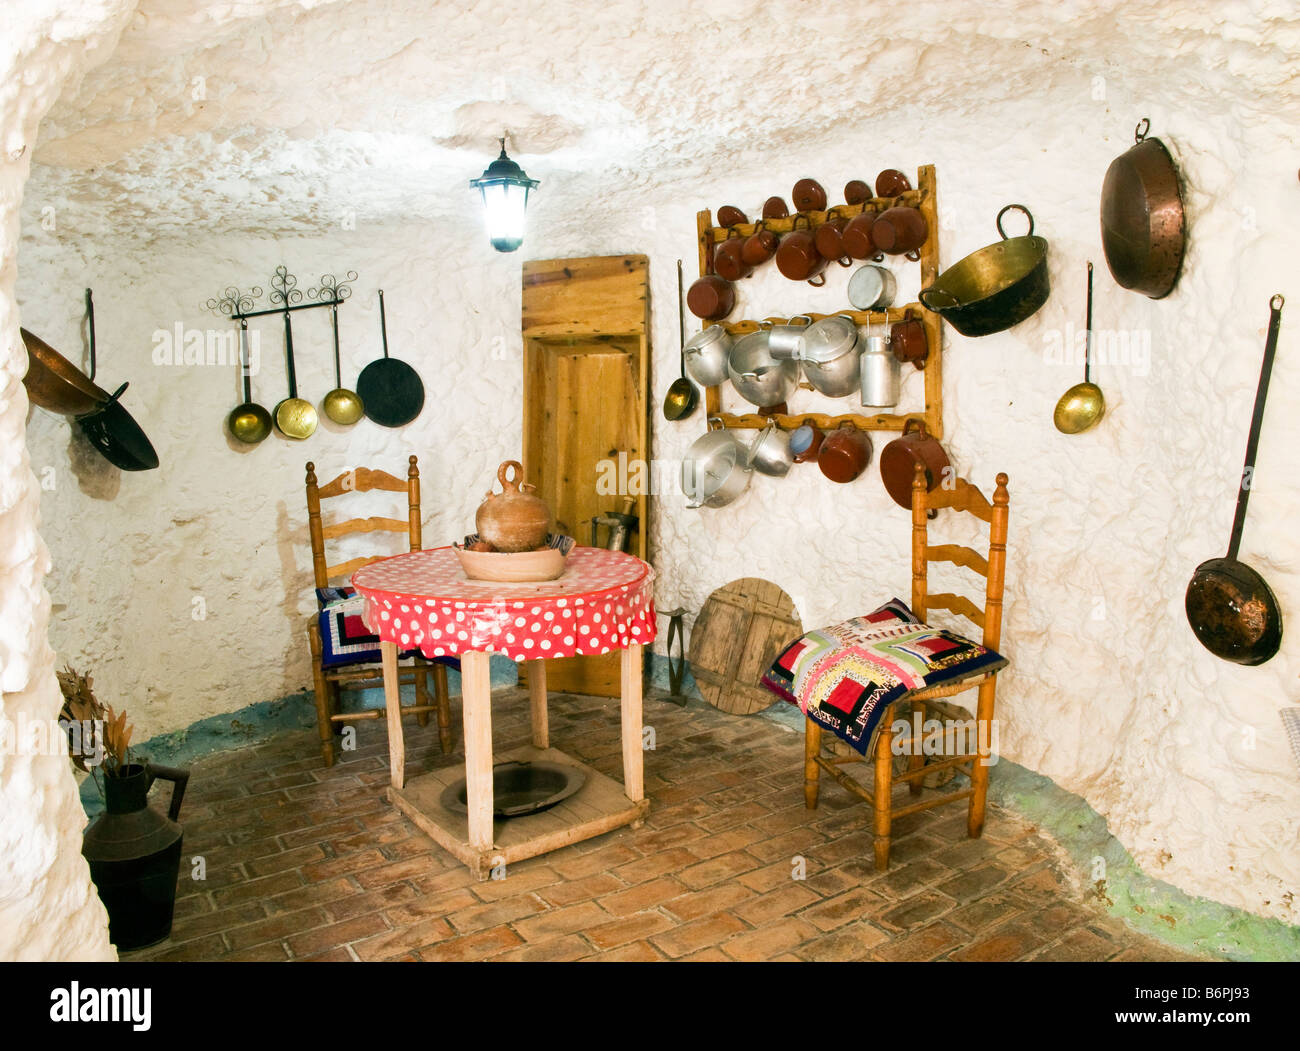 Inside a gypsy's cave house in the Sacromonte distrite of Granada Andalucia Spain - Stock Image